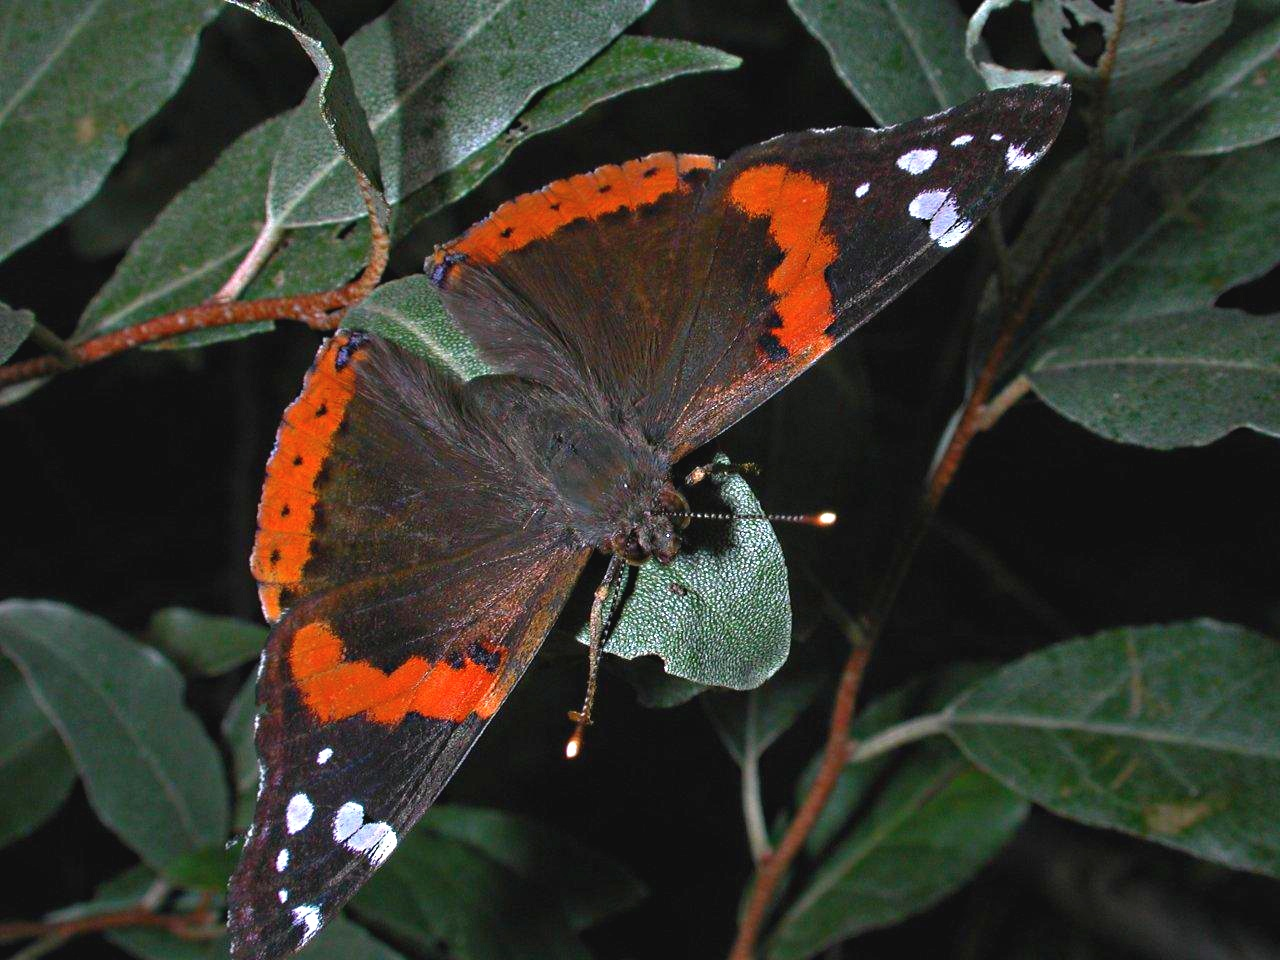 Red Admiral Butterfly resting... photo by Thomas Peace 2014